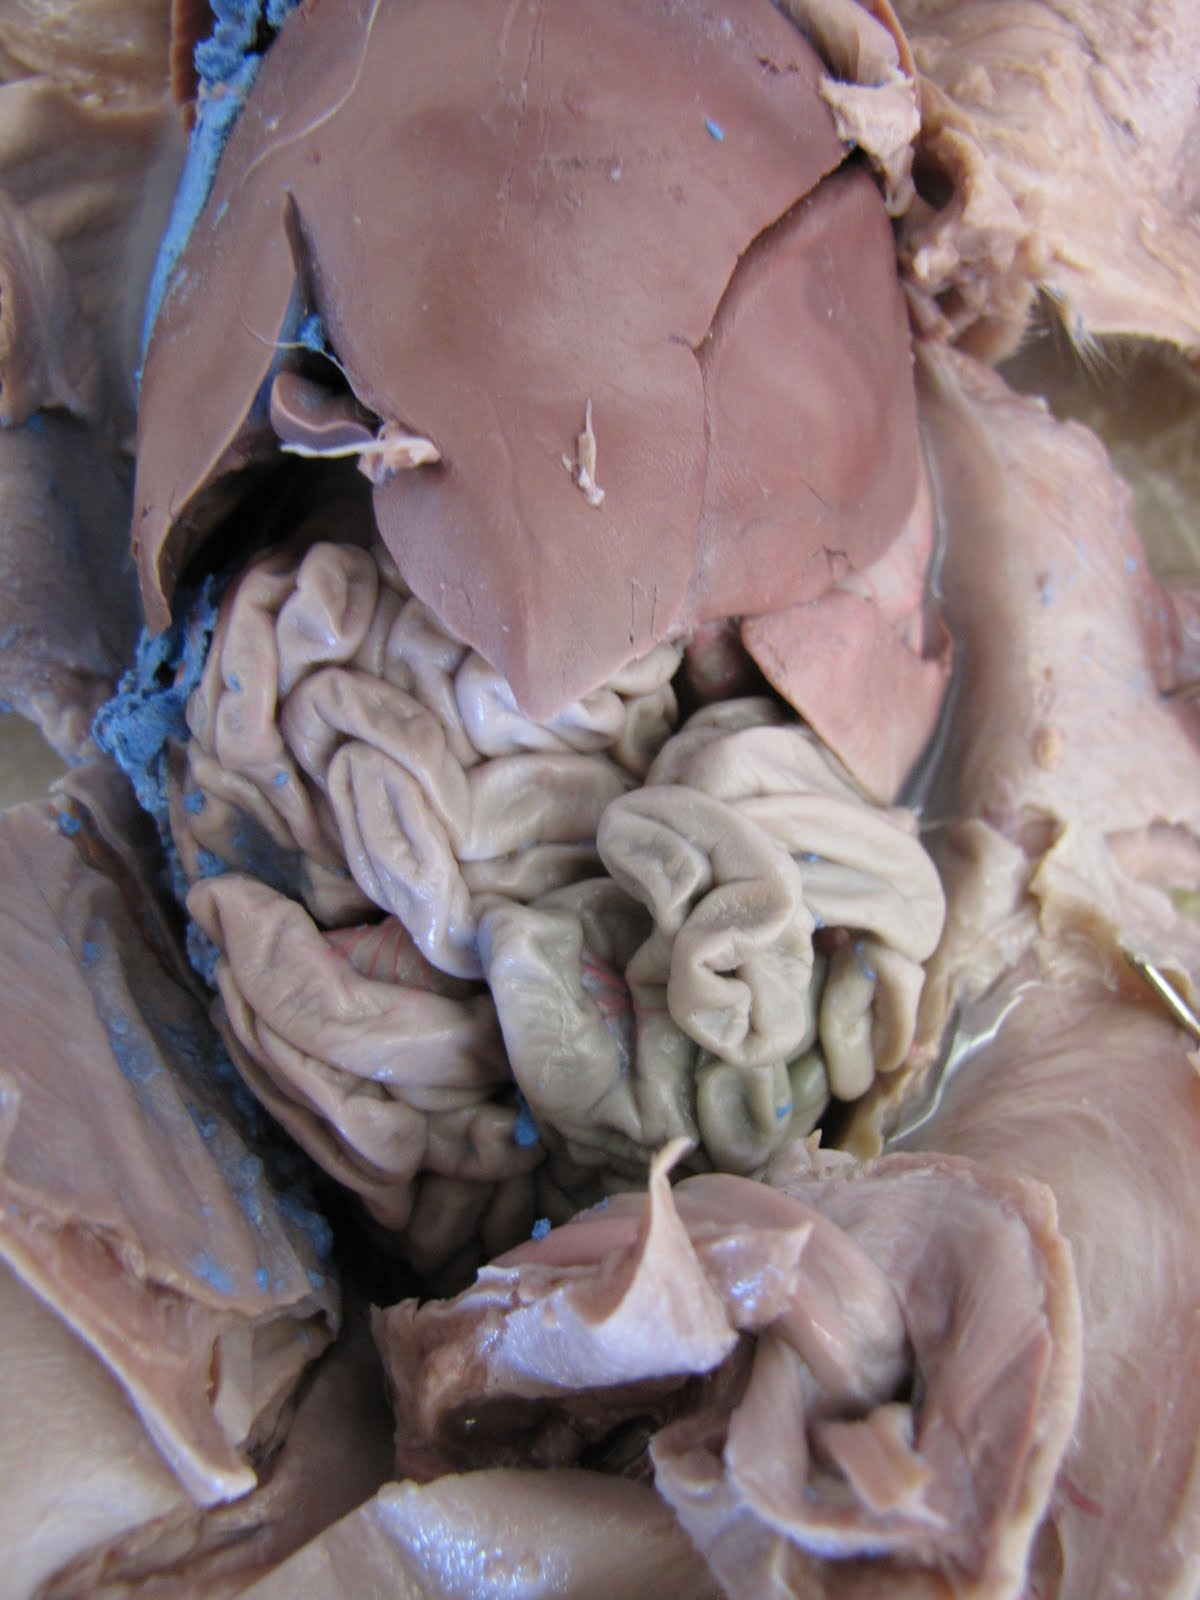 The anatomy of a fetal pig comparison between human and fetal pig anatomy pooptronica Image collections